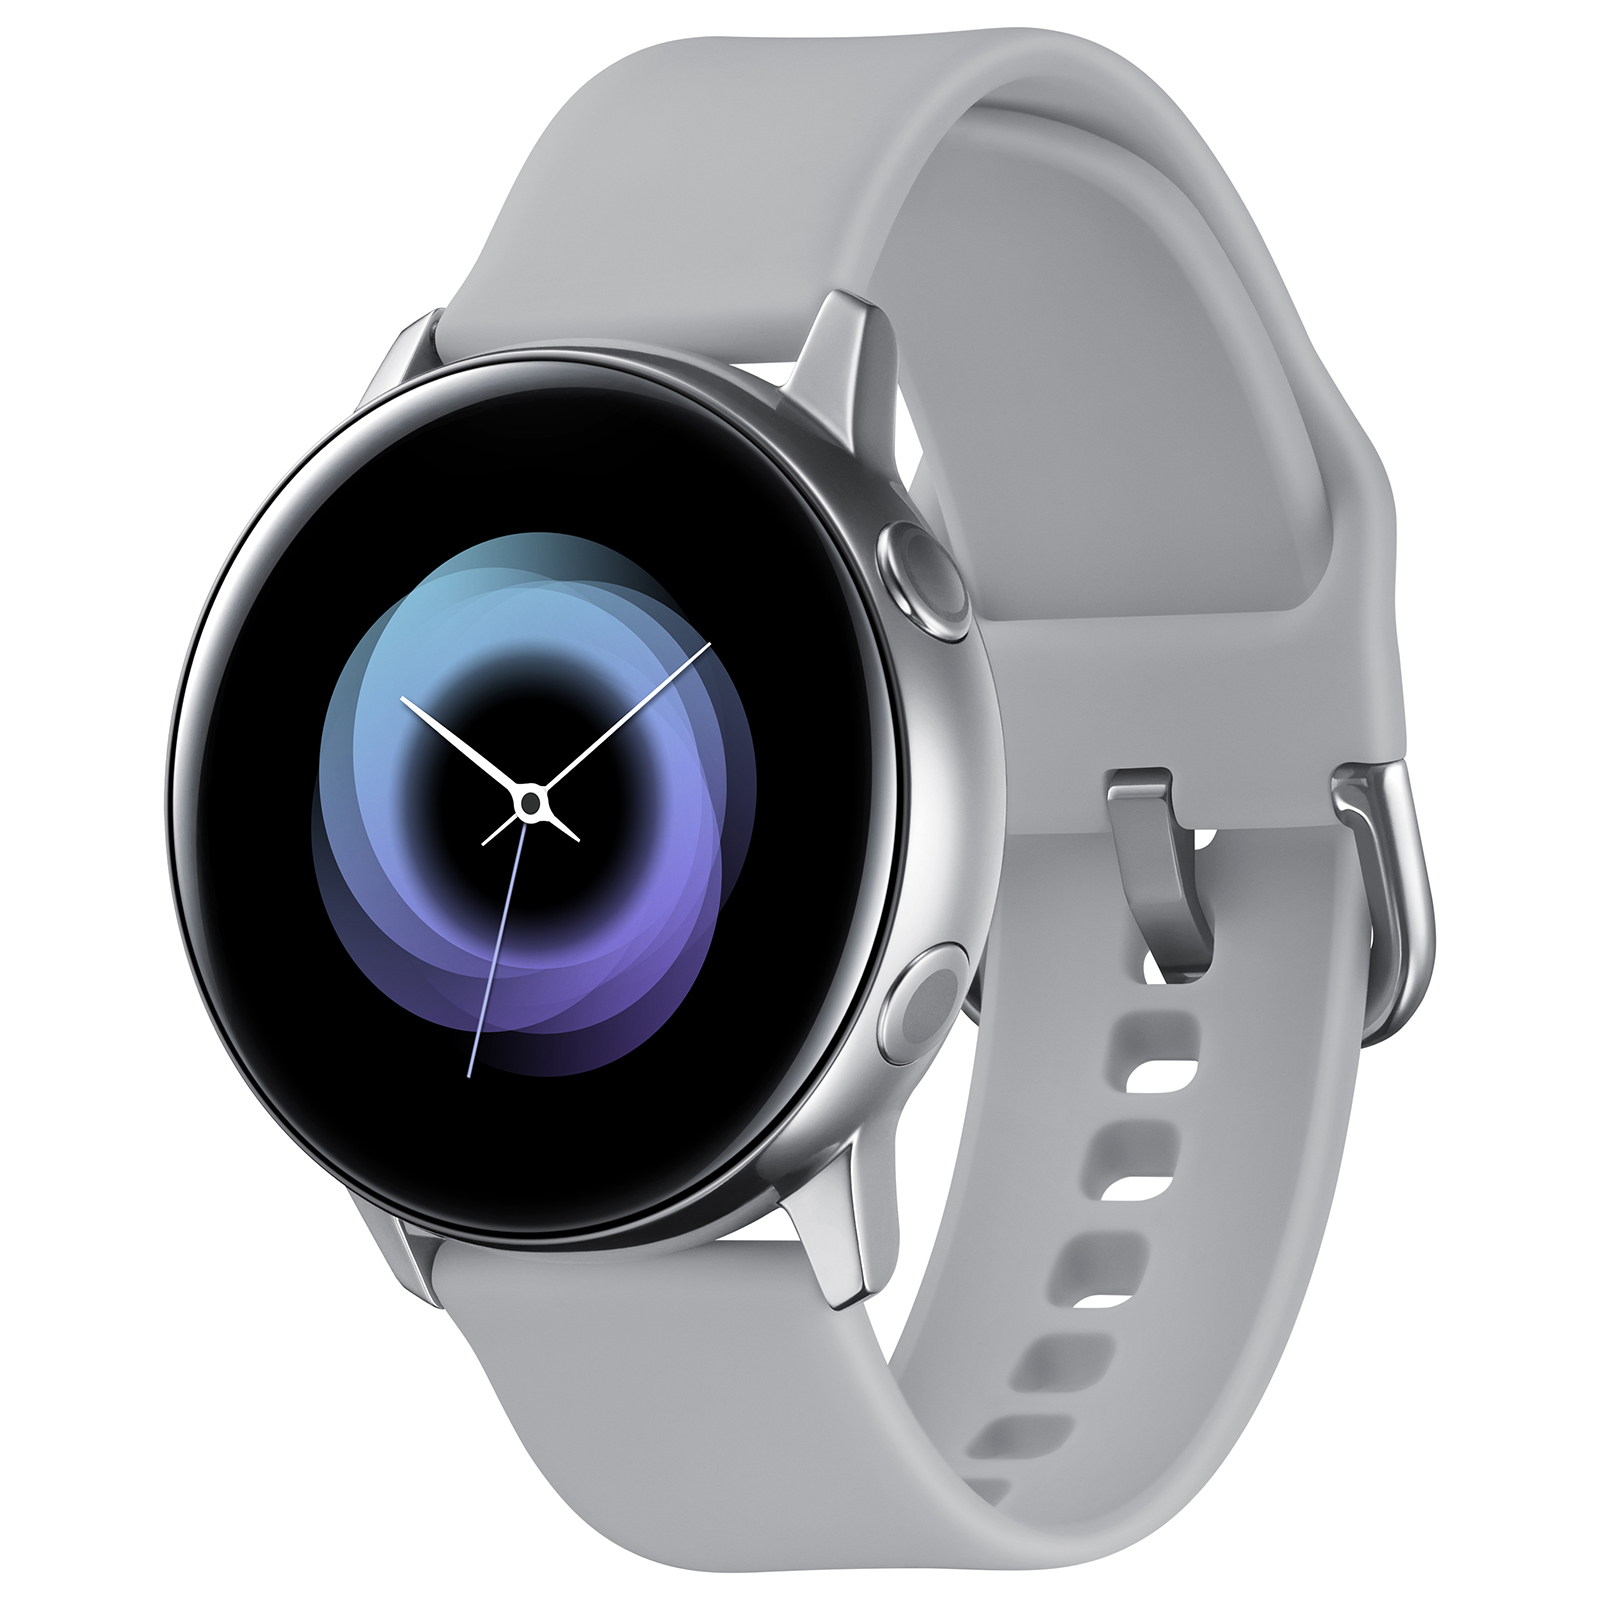 "Montre connectée Samsung Galaxy Watch Active Argent Montre connectée - certifiée IP68 - RAM 768 Mo - écran Super AMOLED 1.1"" - 4 Go - NFC/Wi-Fi/Bluetooth 4.2 - 230 mAh - Tizen OS 4.0"